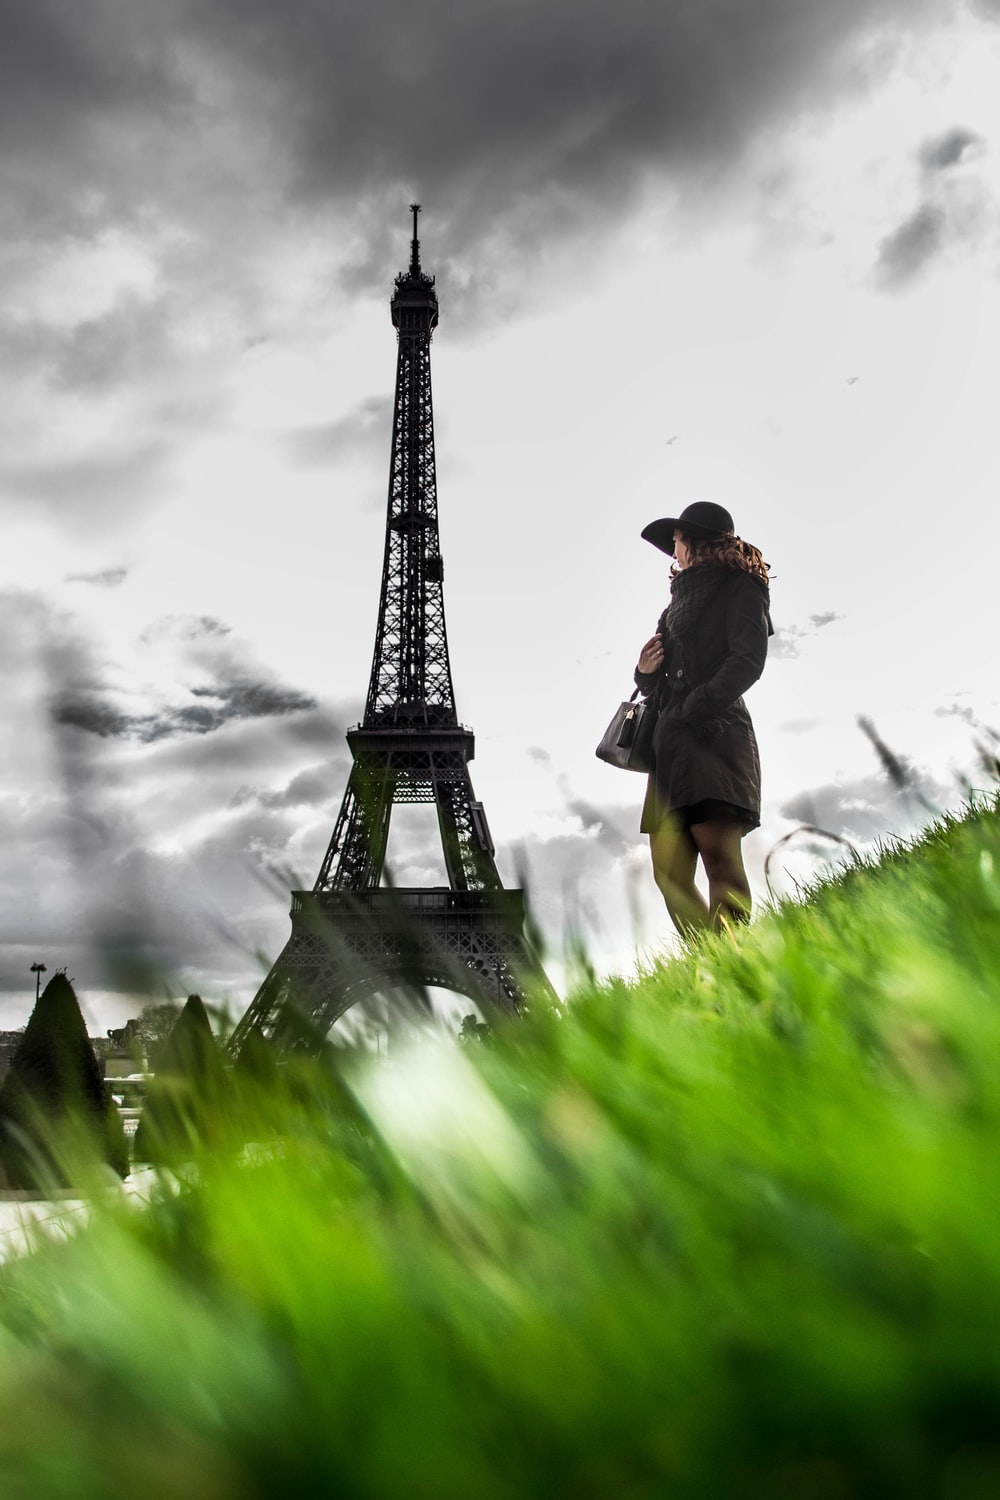 man in black jacket and black hat sitting on green grass near eiffel tower during daytime